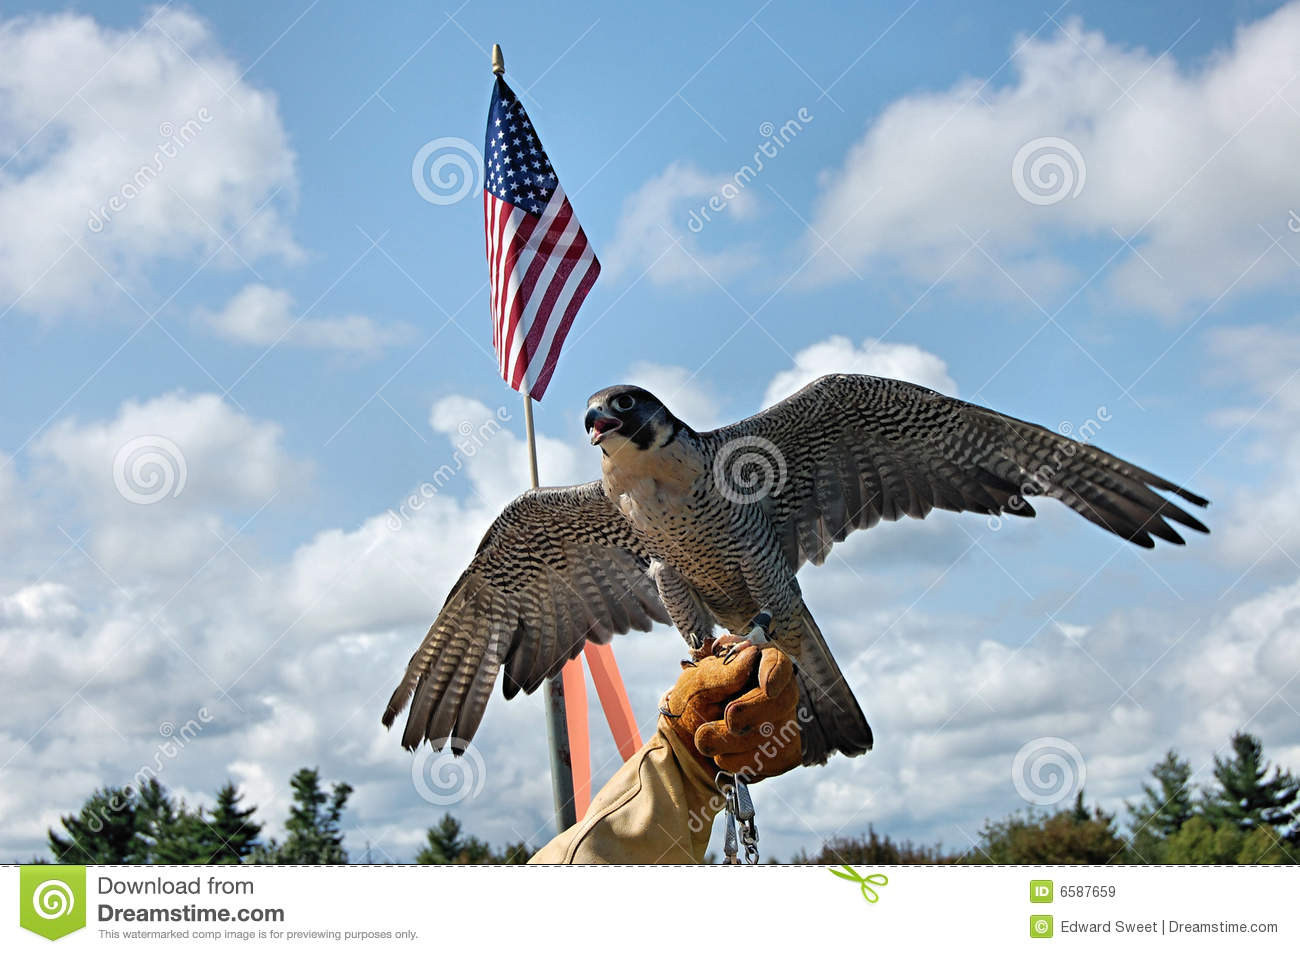 Peregrine falcon with flag